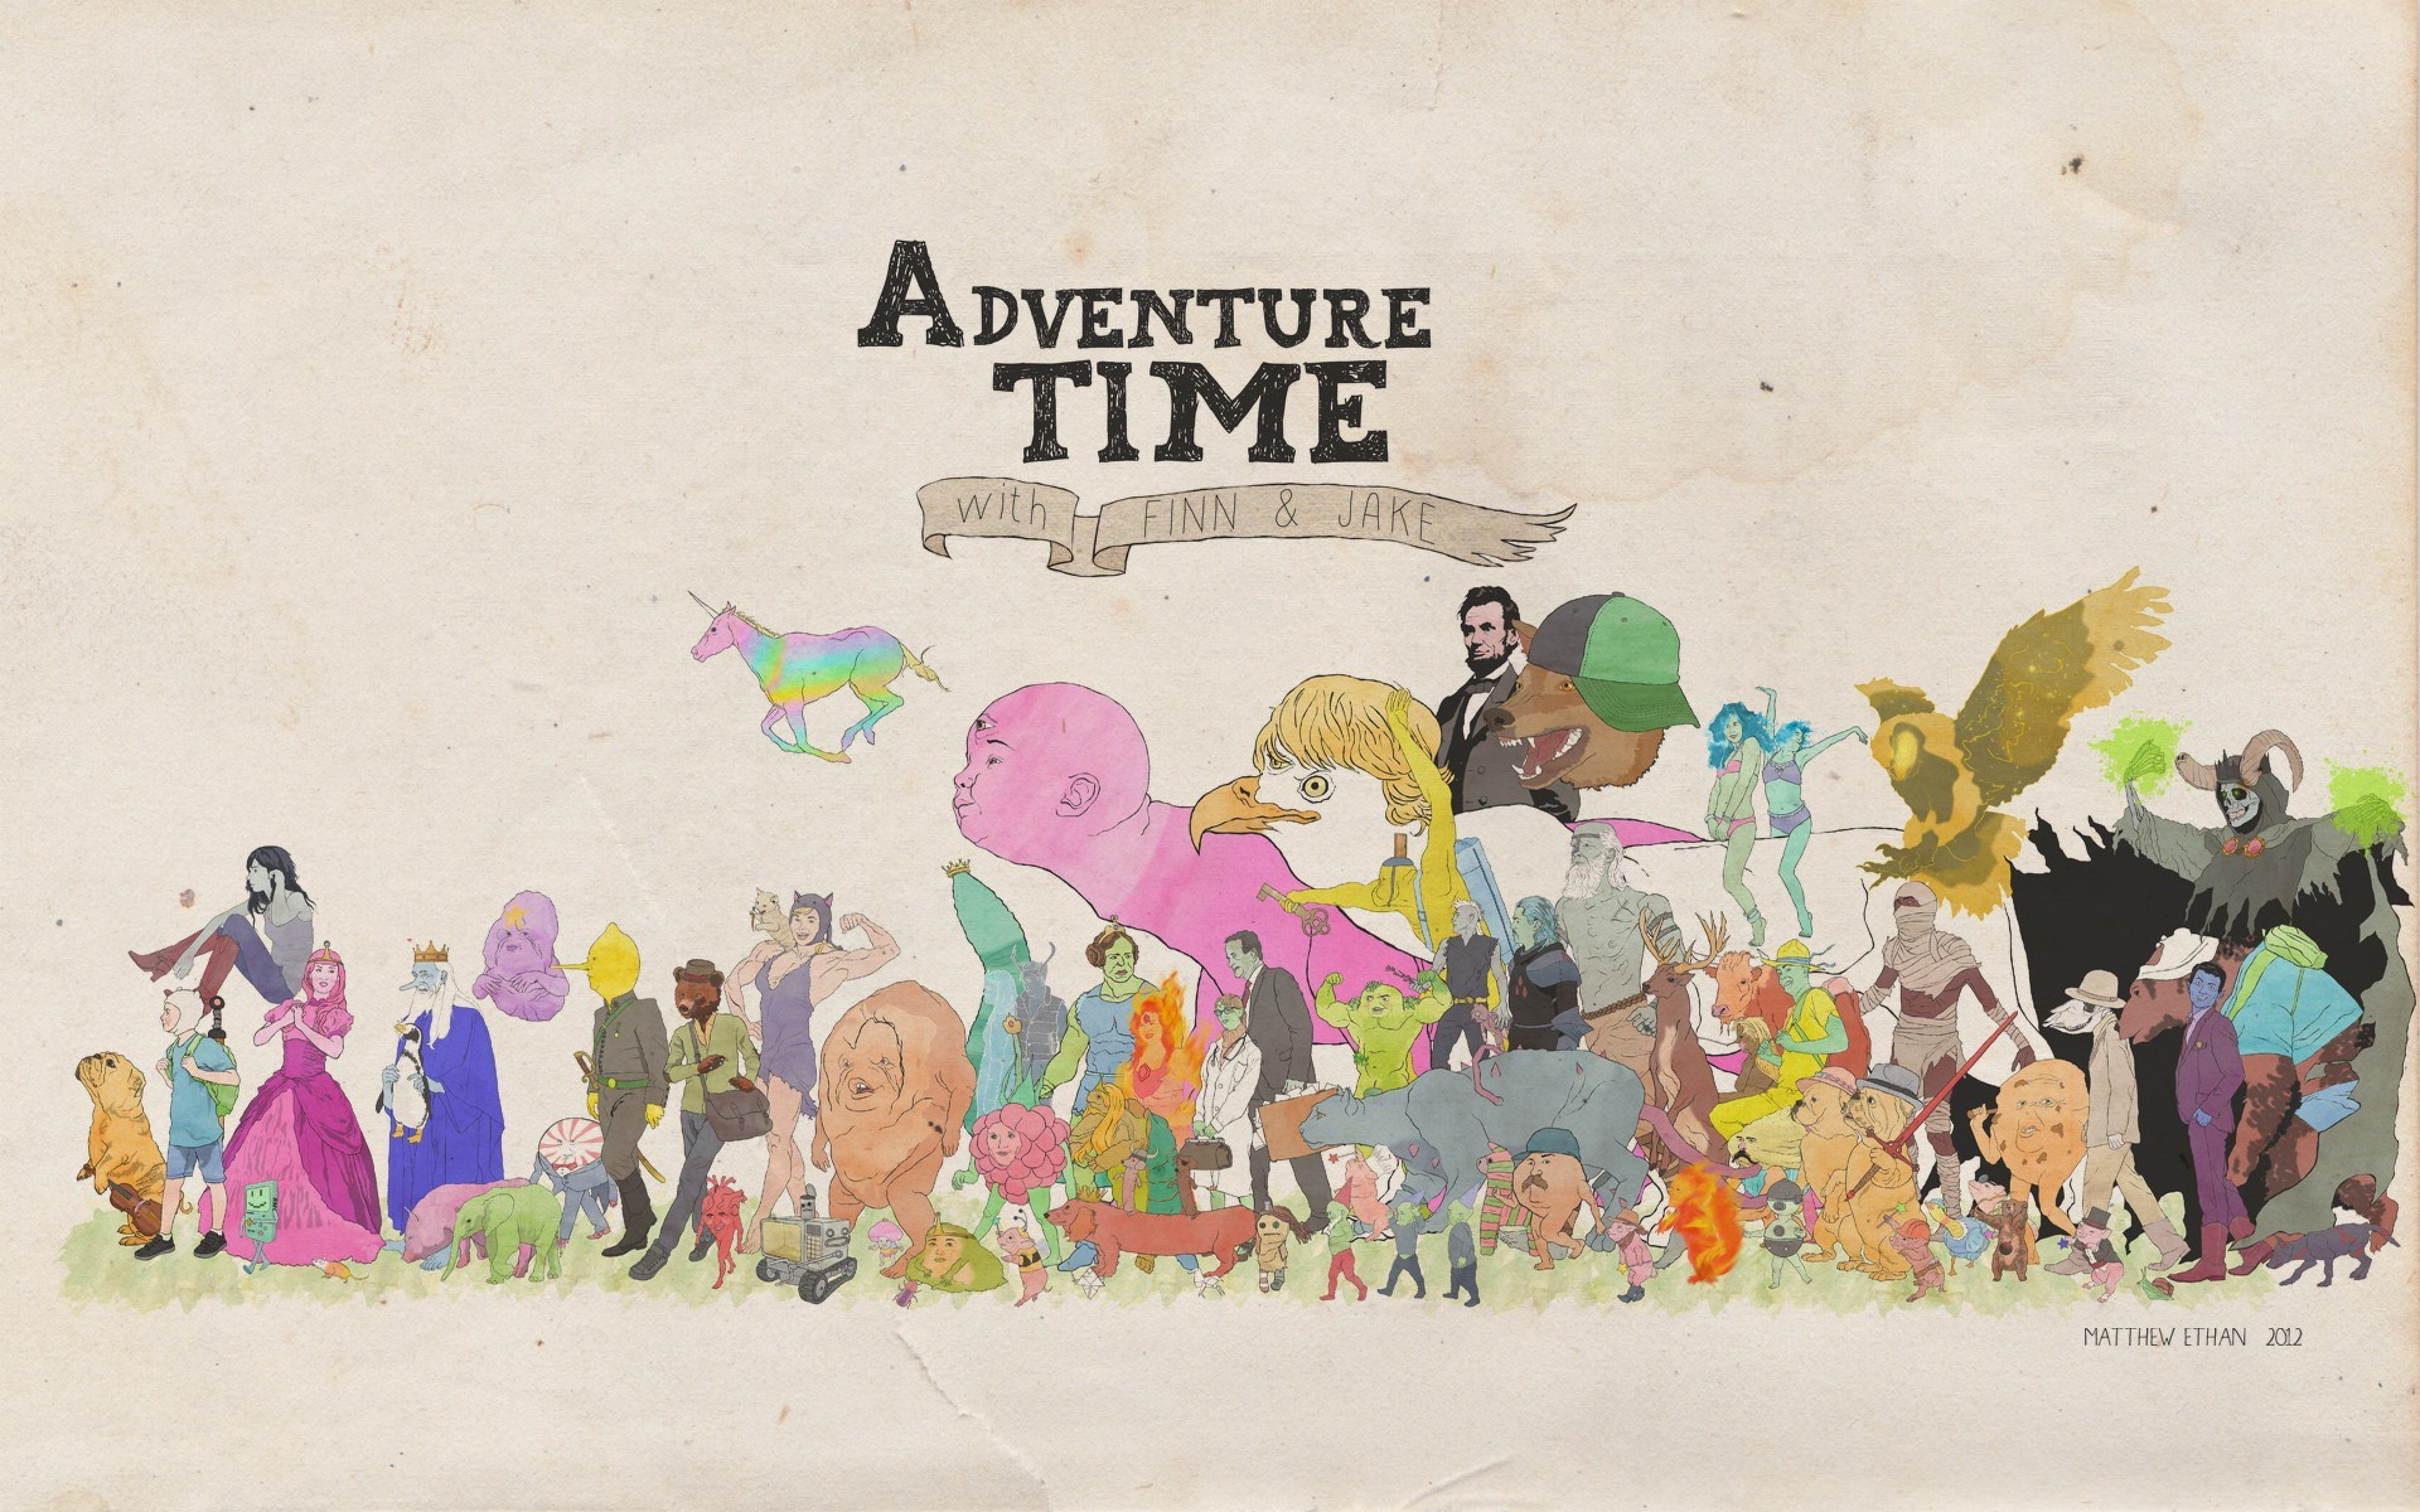 adventure time hd wallpapers backgrounds wallpaper | hd wallpapers